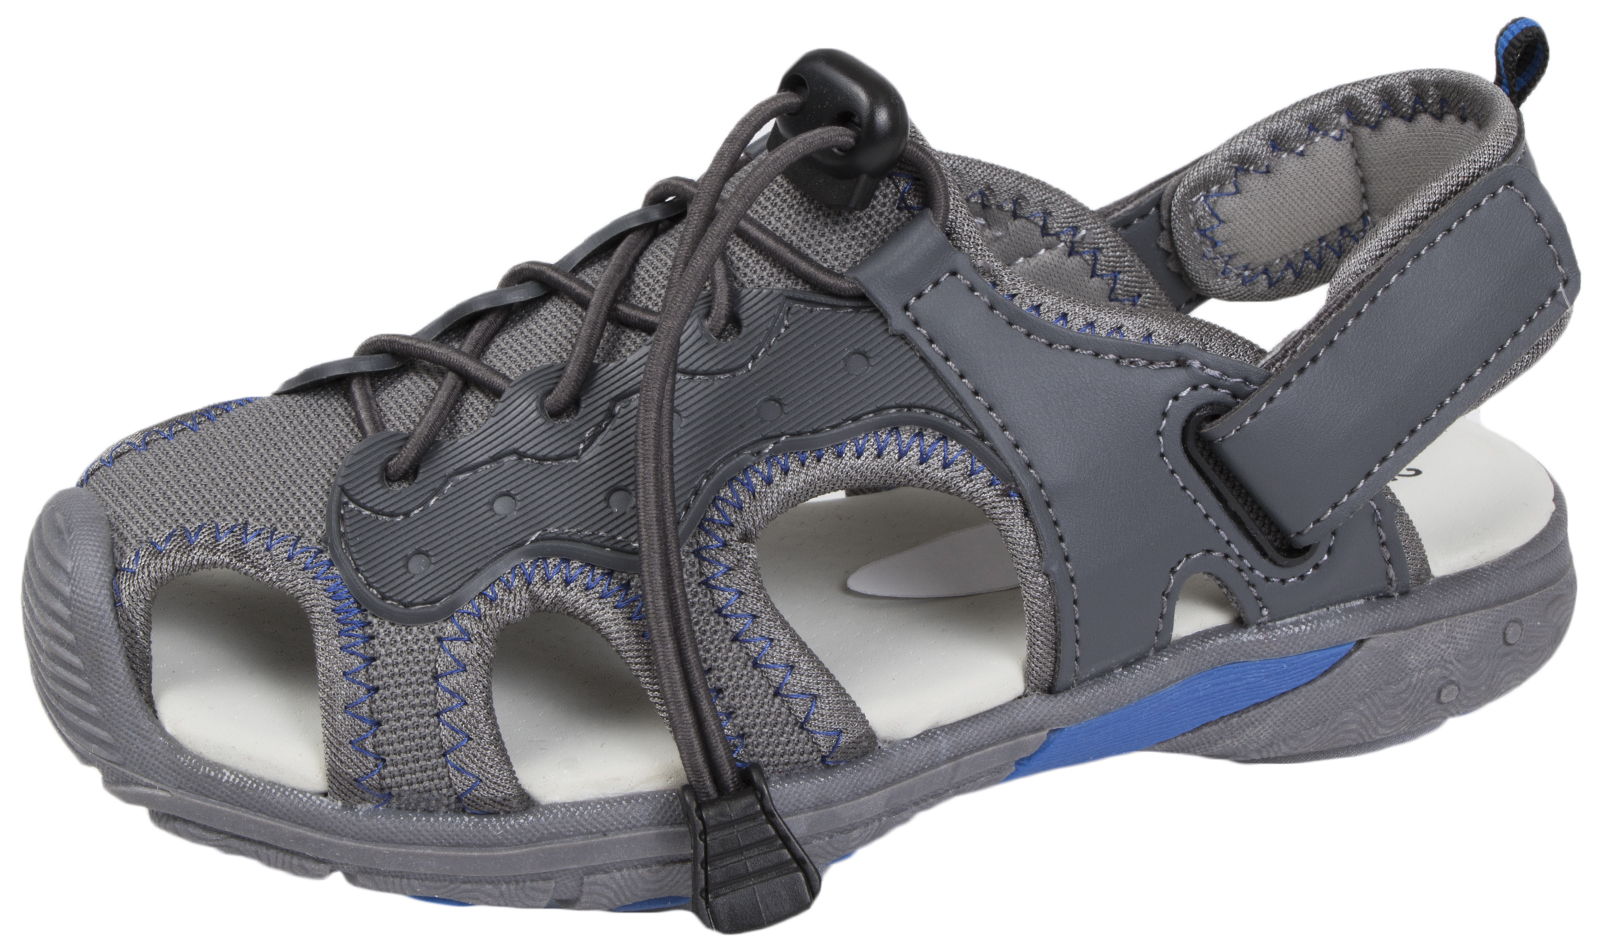 Shop for Kids' Closed Toe Sandals from the Masseys site. Shop for your favorite brands and styles now, and pay later with Masseys Credit!